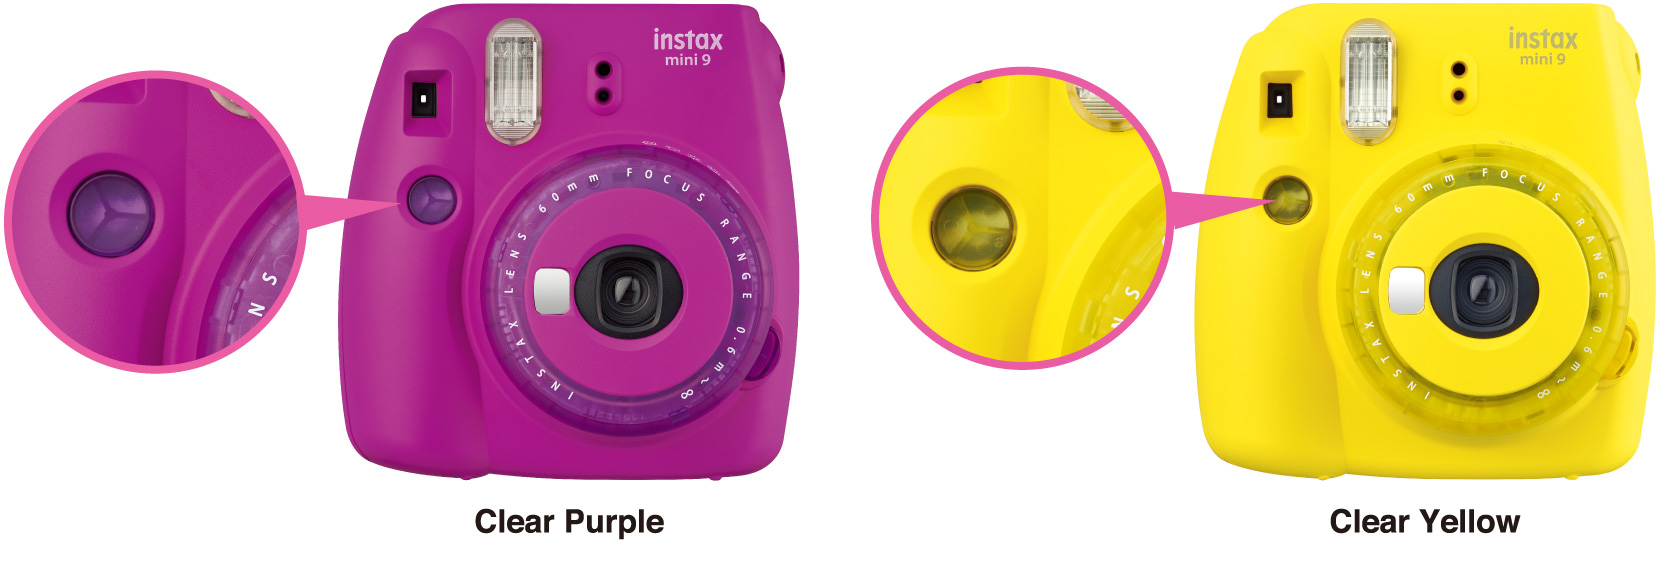 Purple and yellow mini 9 limited edition cameras